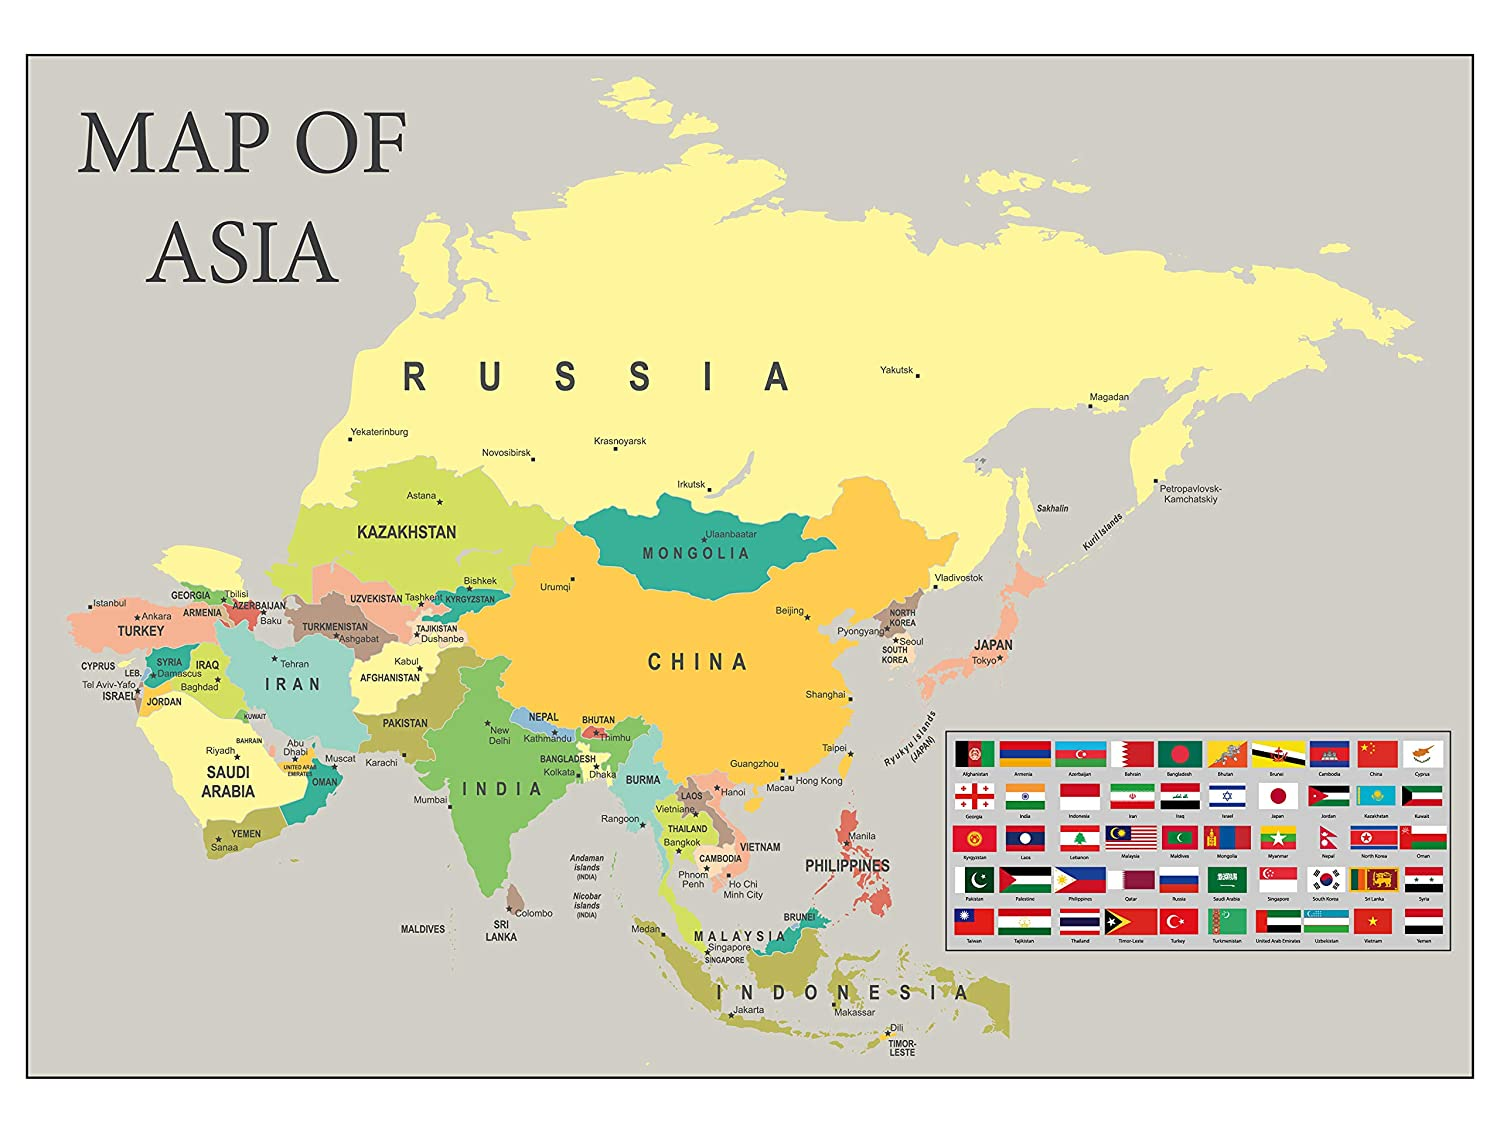 Map Of Asia With Capital Cities.Sonicprint Map Of Asia Showing All Capital Cities Along With Flags Available Framed